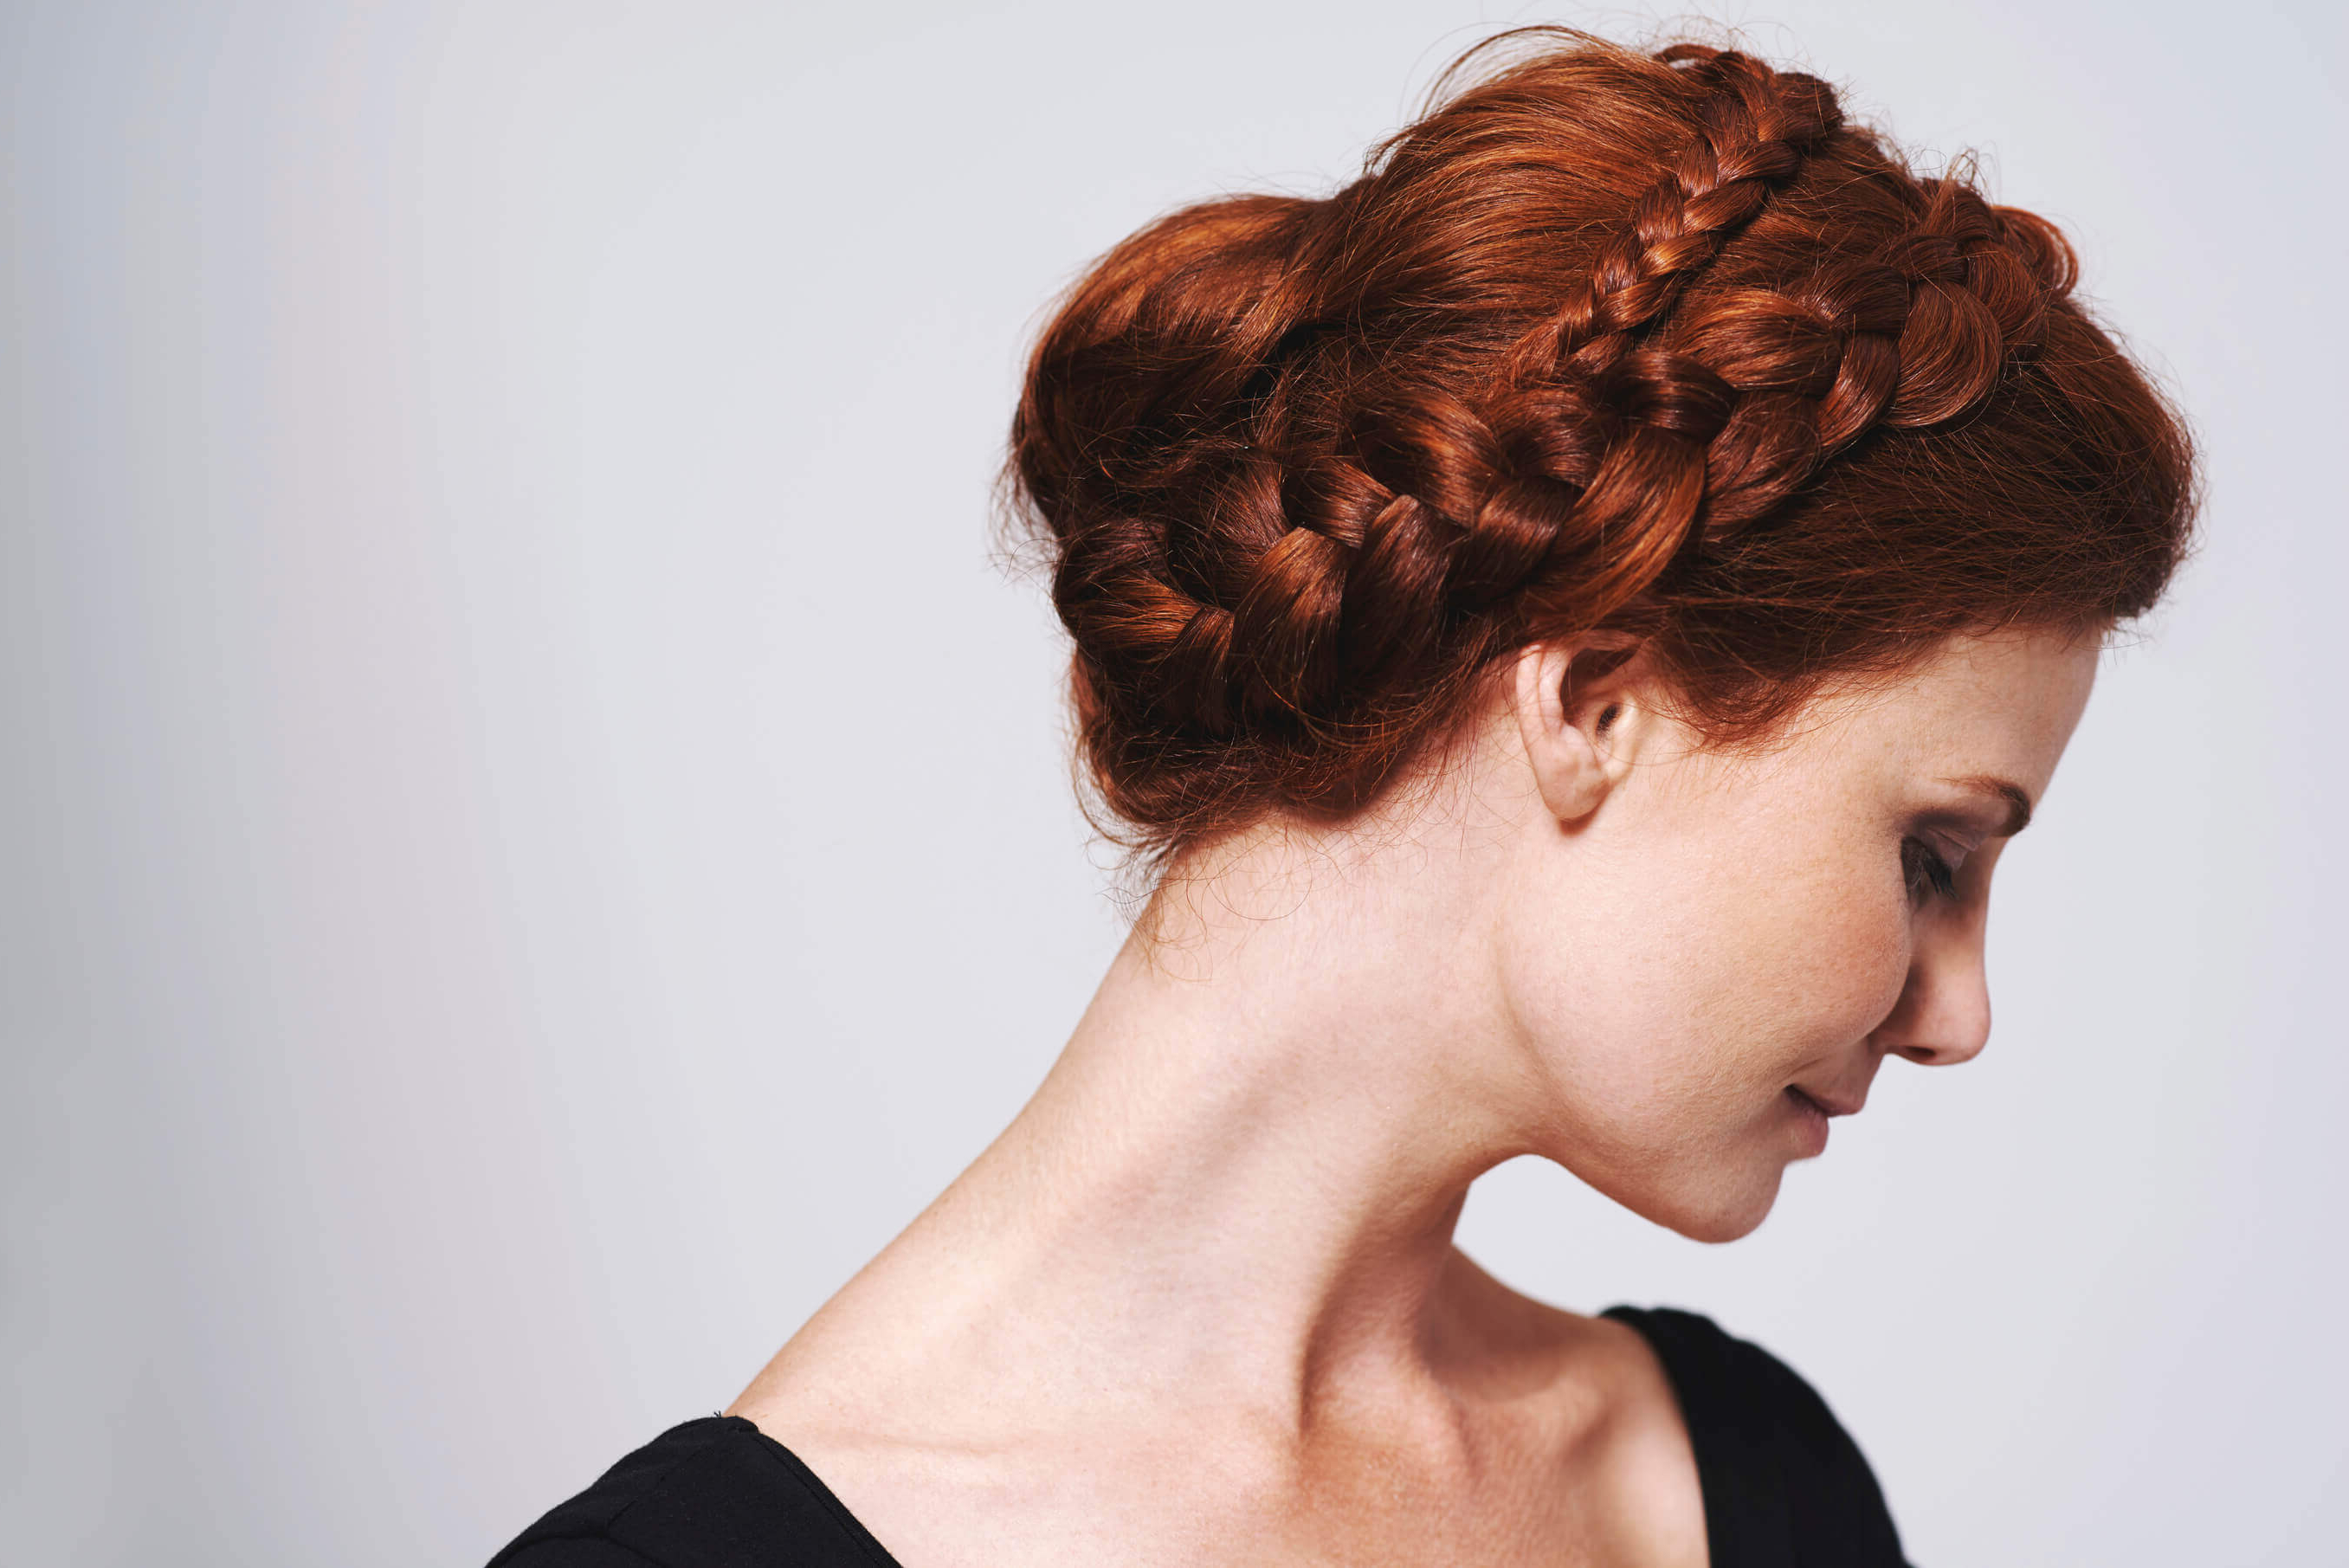 Thick Hair Hairstyles: 7 Updos To Try Inside 2019 Extra Thick Braided Bun Hairstyles (Gallery 8 of 20)